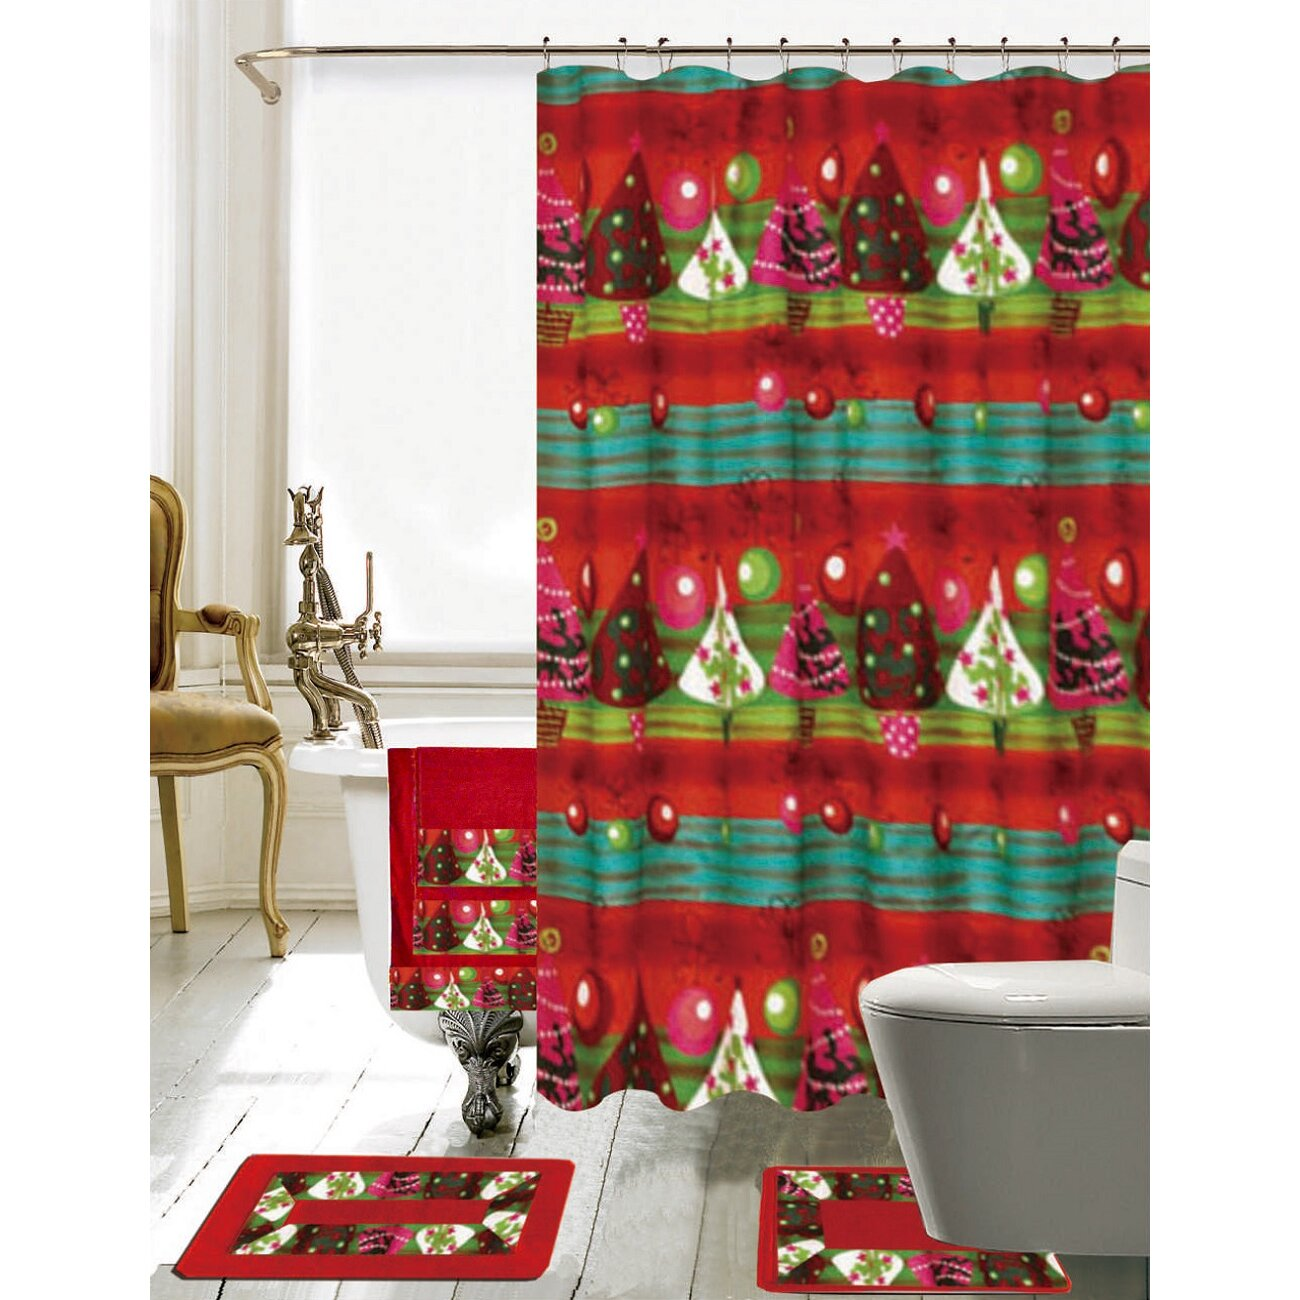 Daniels Bath Christmas Bathroom Decor 18 Piece Shower